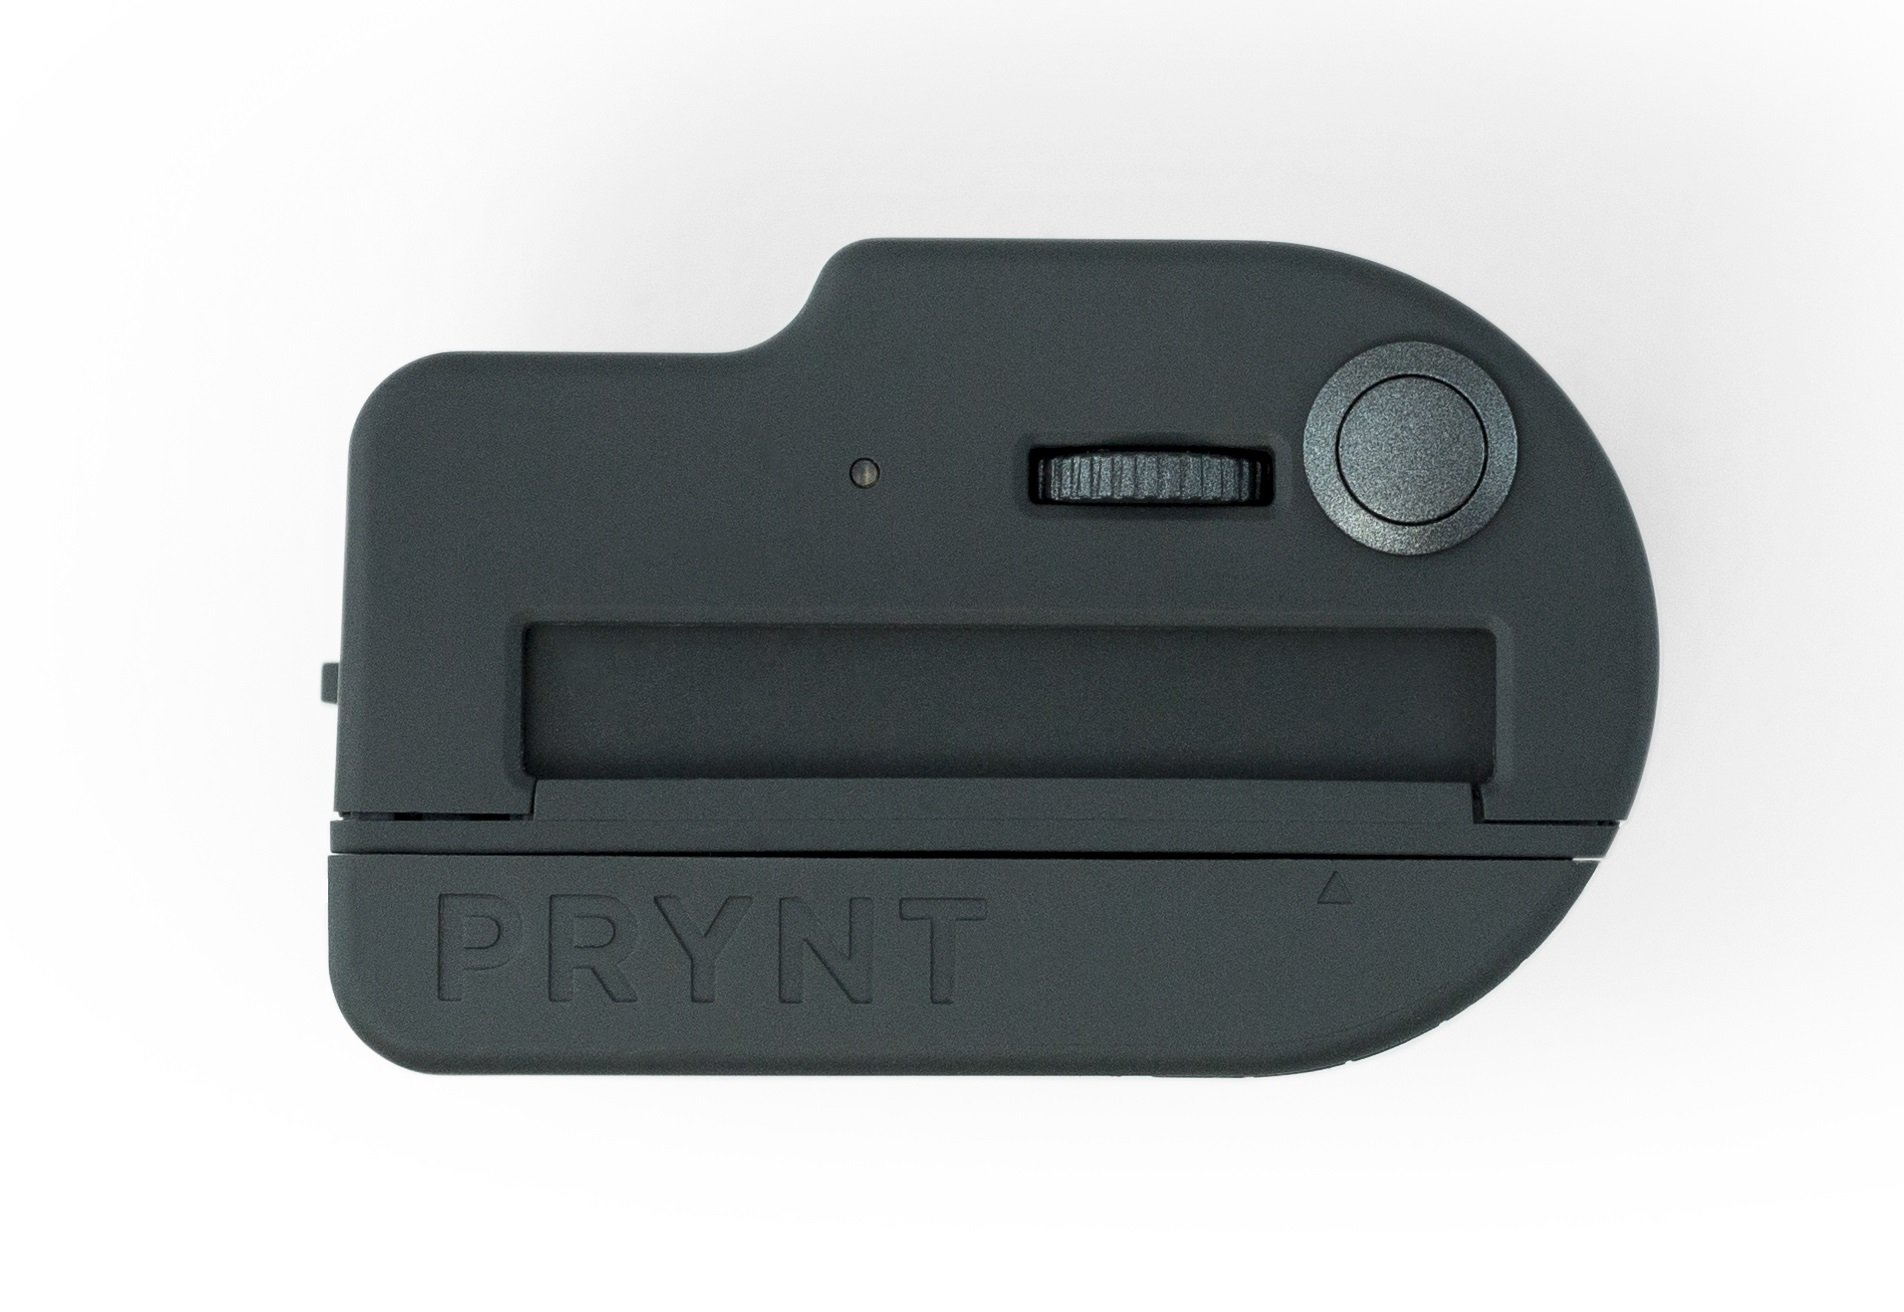 Prynt Pocket, Instant Photo Printer for iPhone - Graphite (PW310001-DG) by Prynt (Image #4)